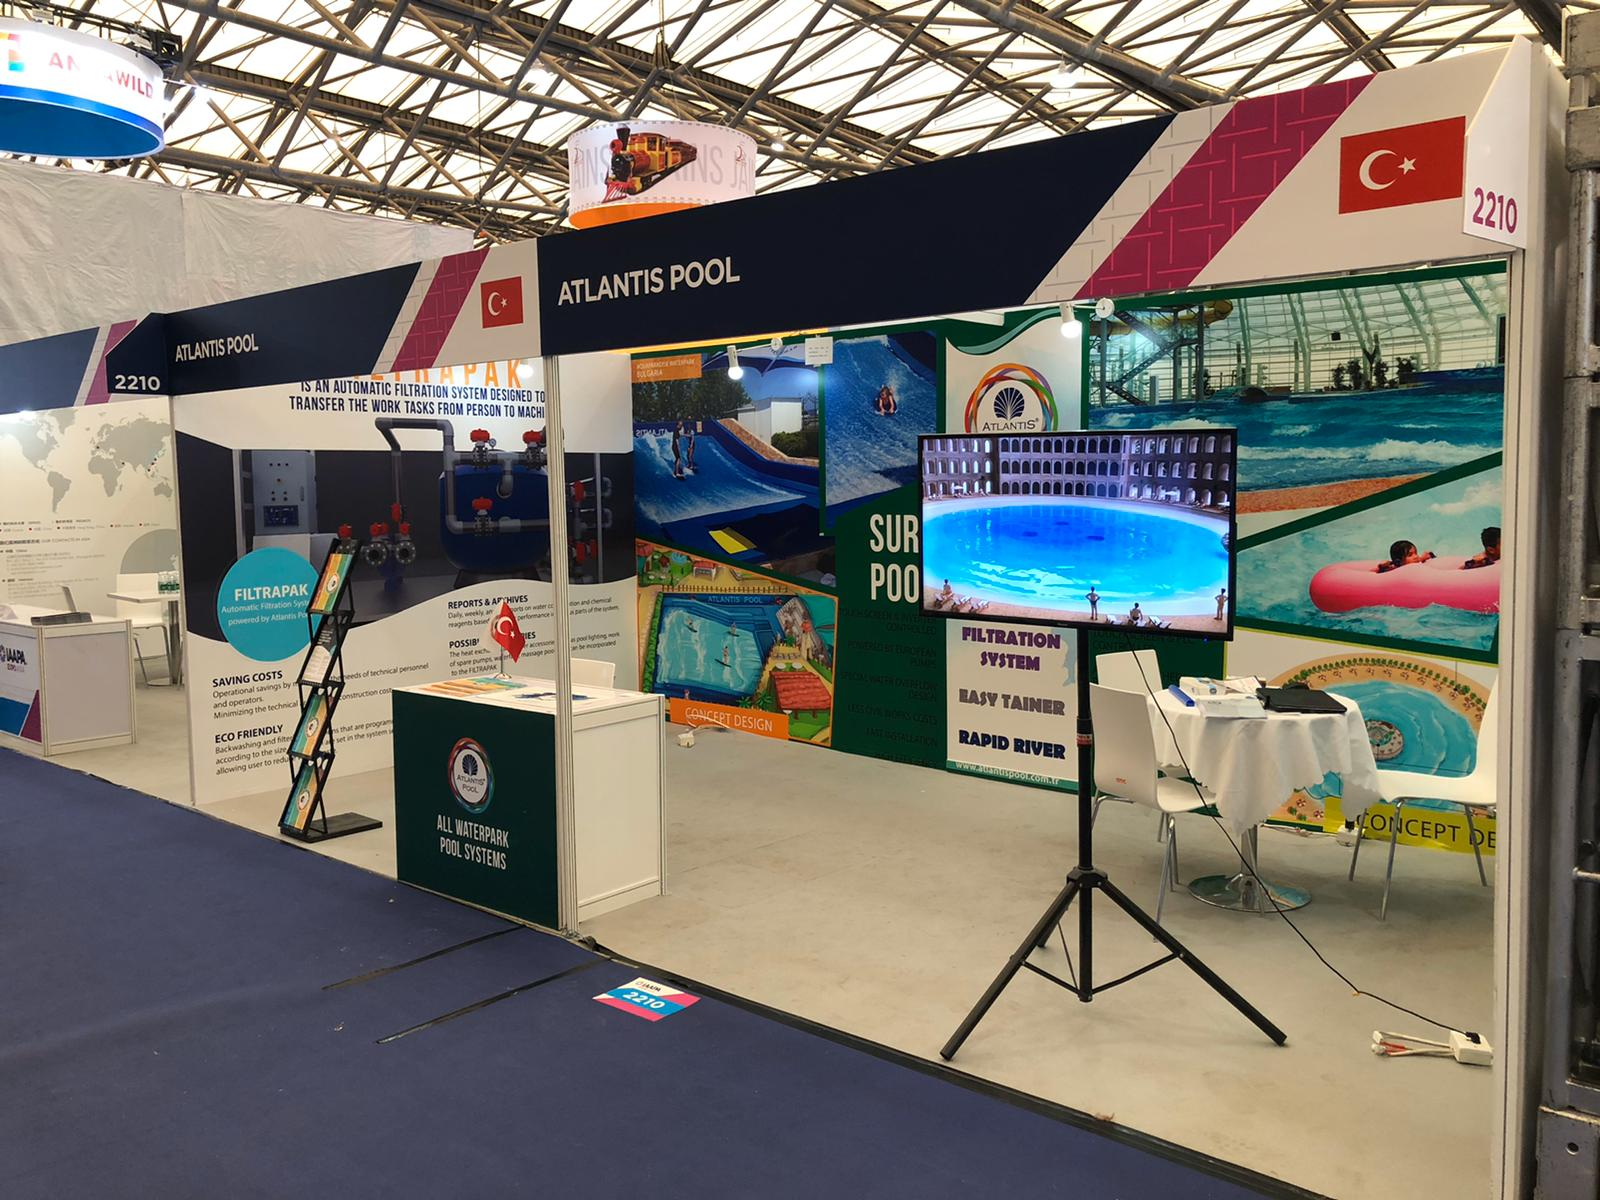 ATLANTIS POOL - IAAPA ASIA EXPO 2019